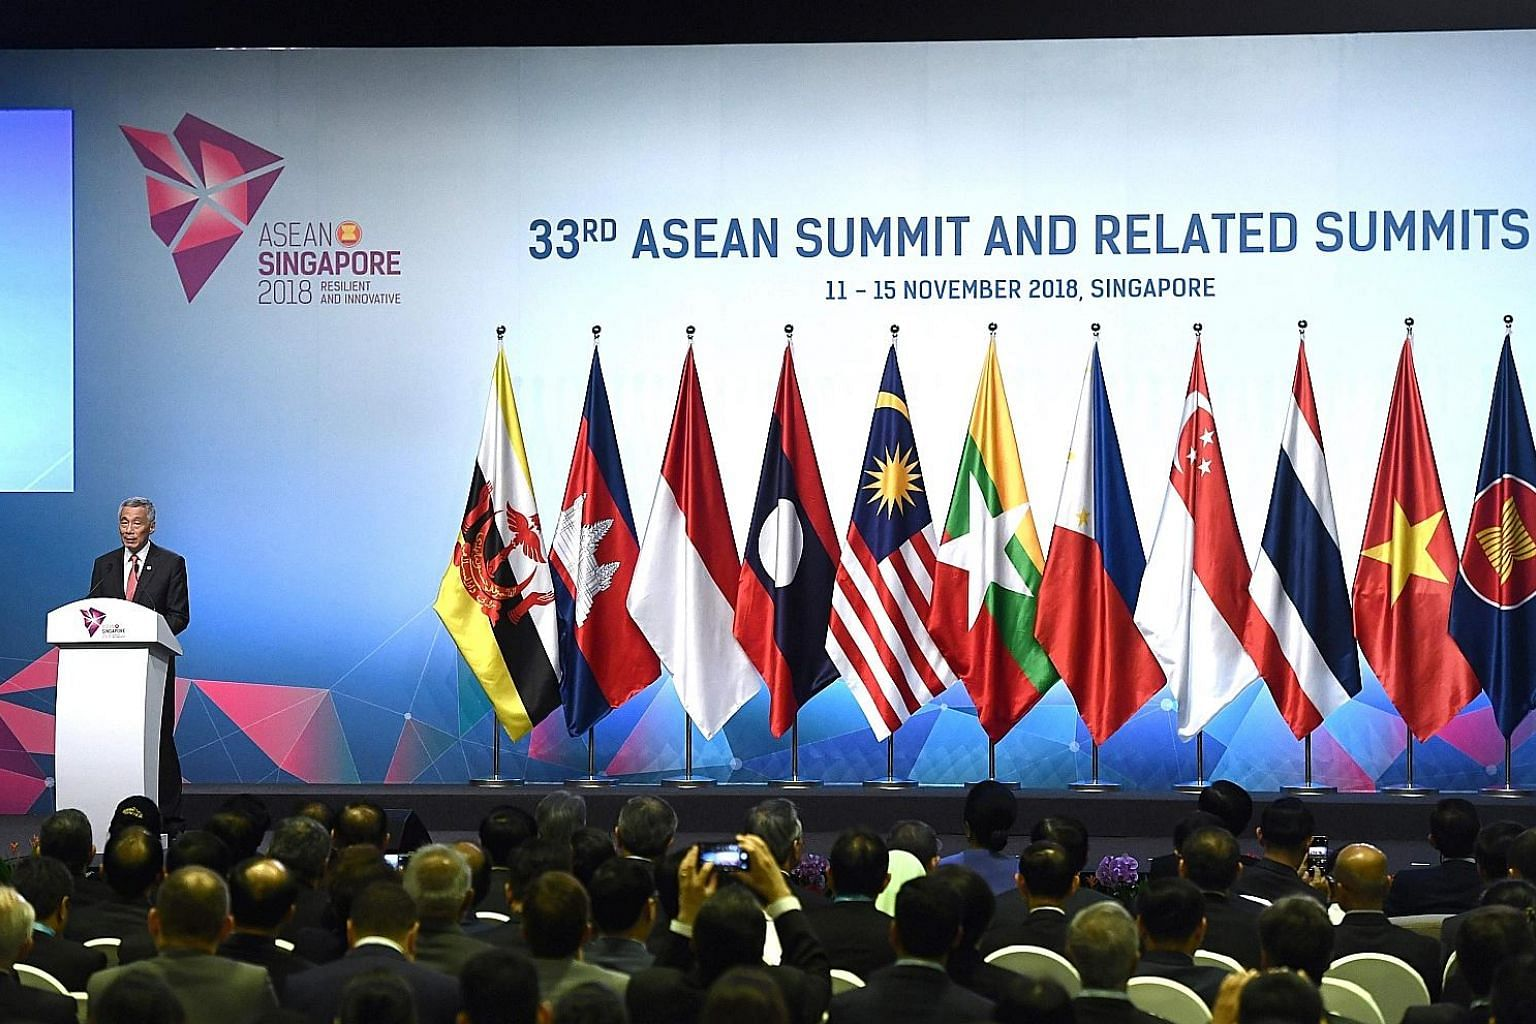 Prime Minister Lee Hsien Loong speaking at yesterday's opening ceremony of the 33rd Asean Summit - the final milestone of Singapore's year as the grouping's chair.